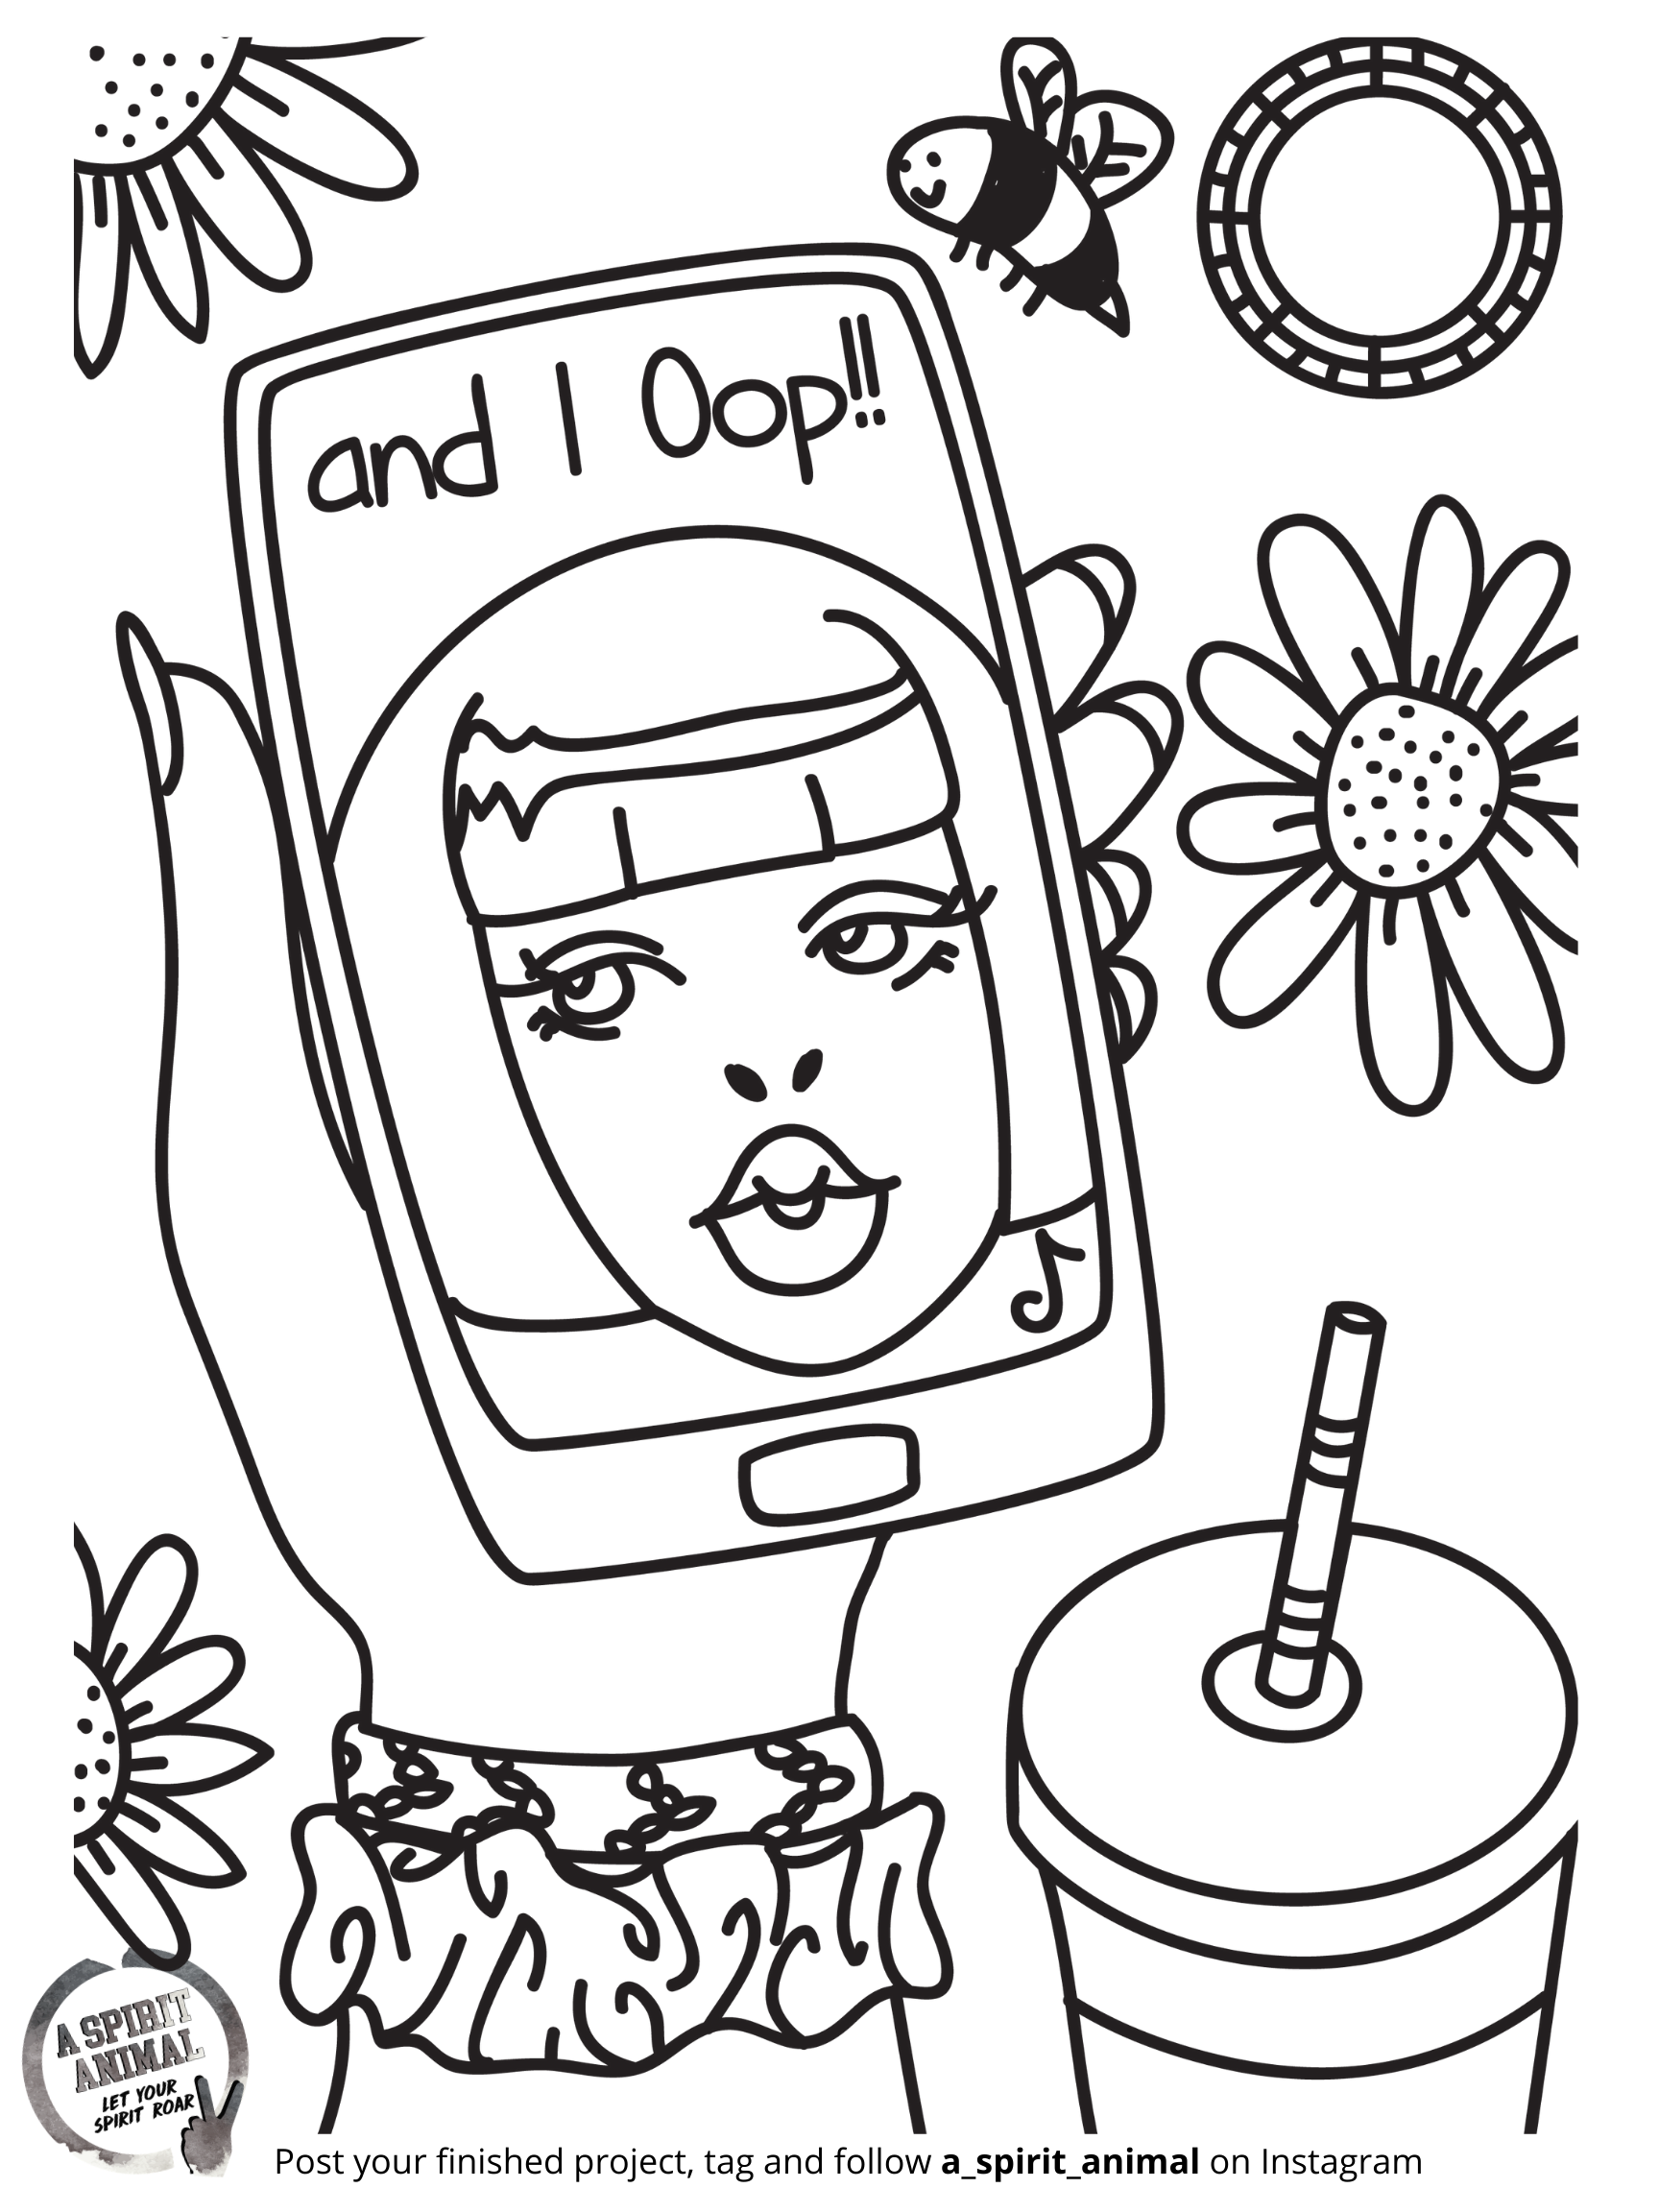 And I Oop Vsco Girl A Spirit Animal Free Holiday Activity Coloring Pages Free Coloring Pages Spirit Animal Coloring Pages